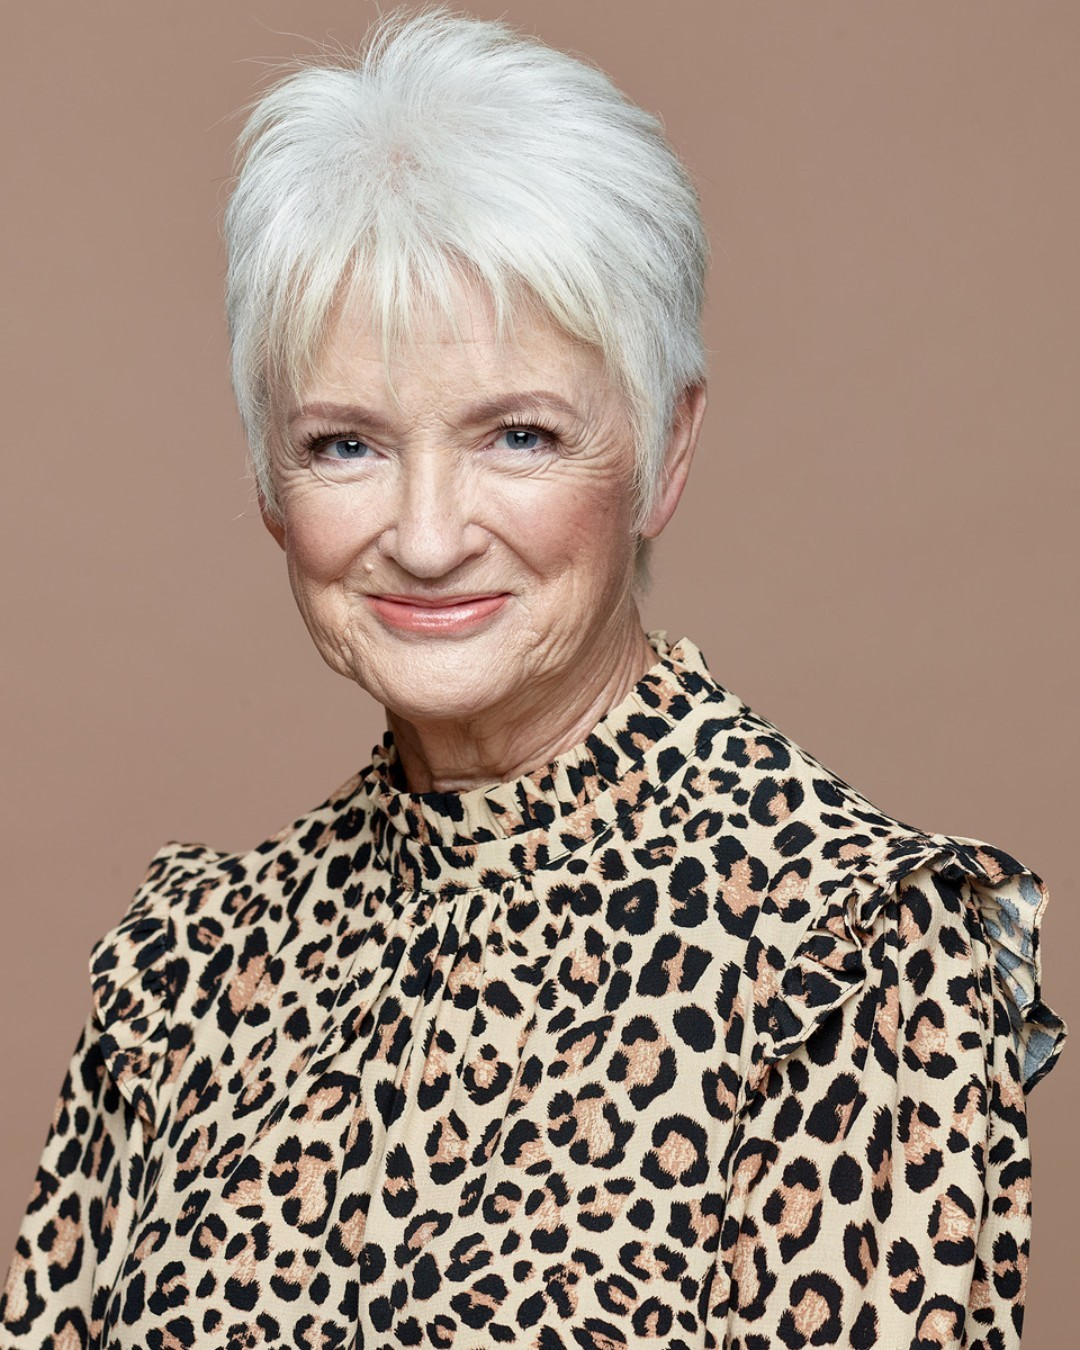 White short pixie cut for women over seventy